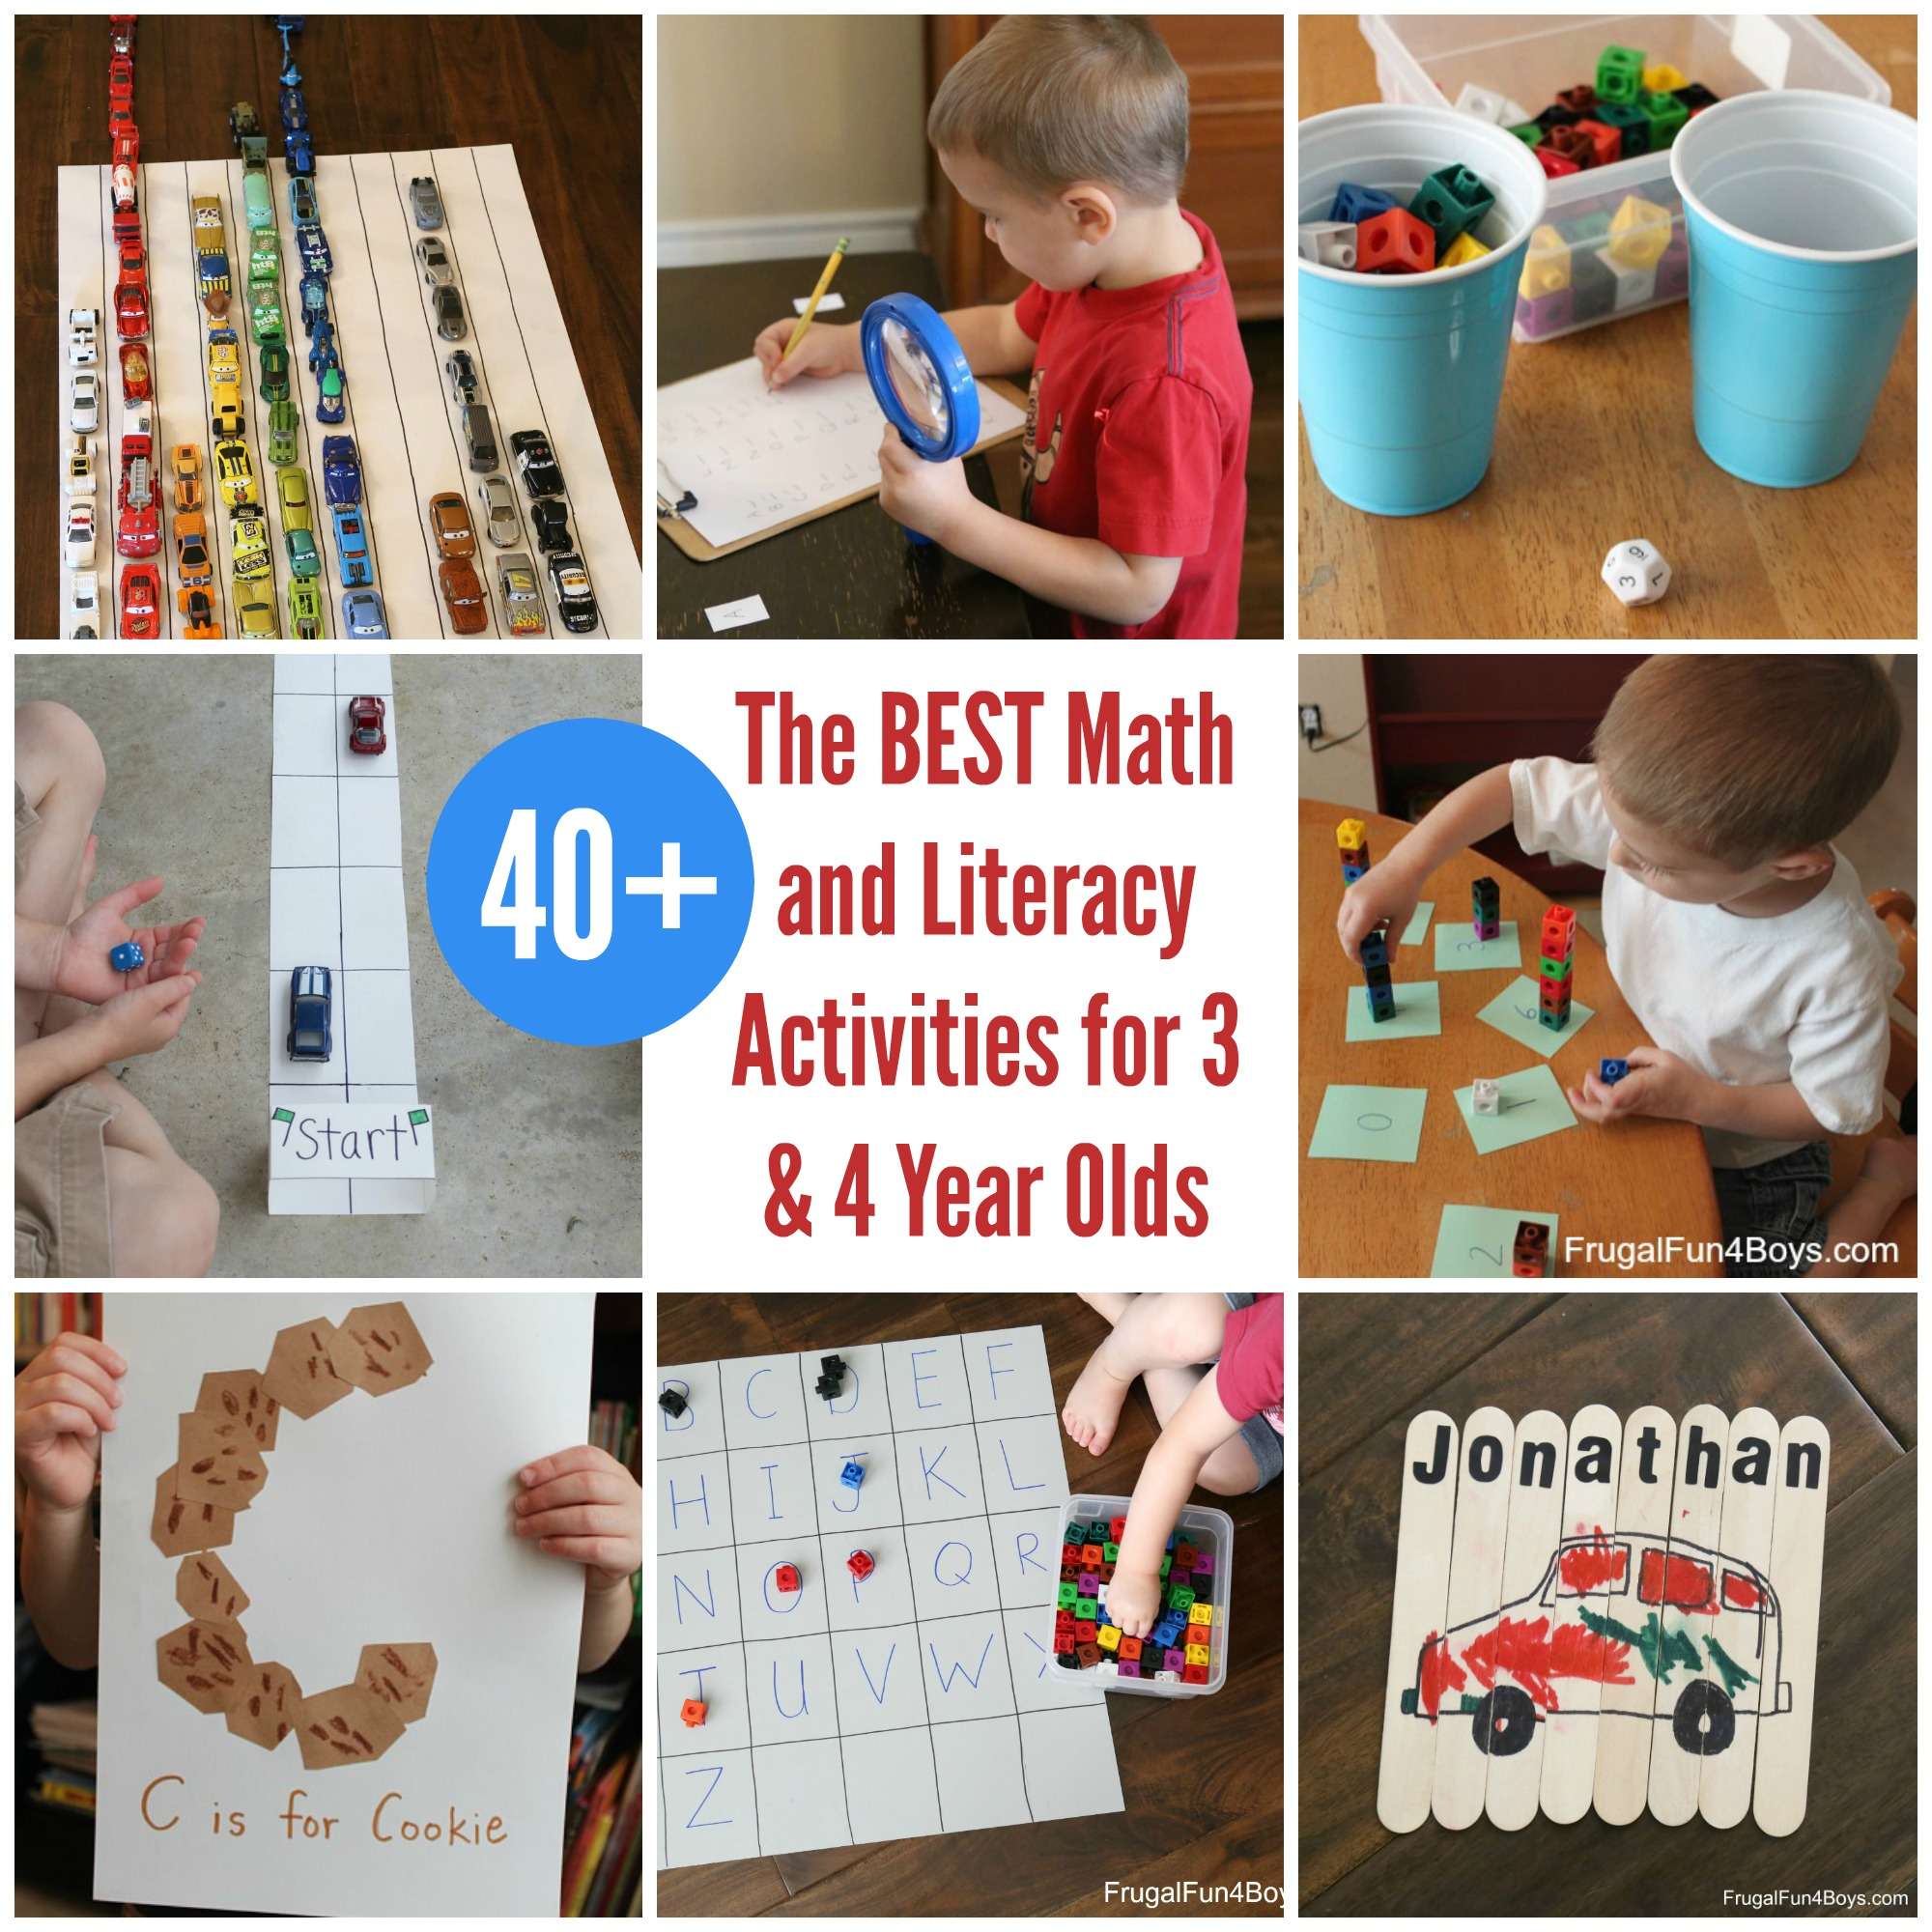 The BEST Math and Literacy Activities for Preschoolers - 3 & 4 Year Olds